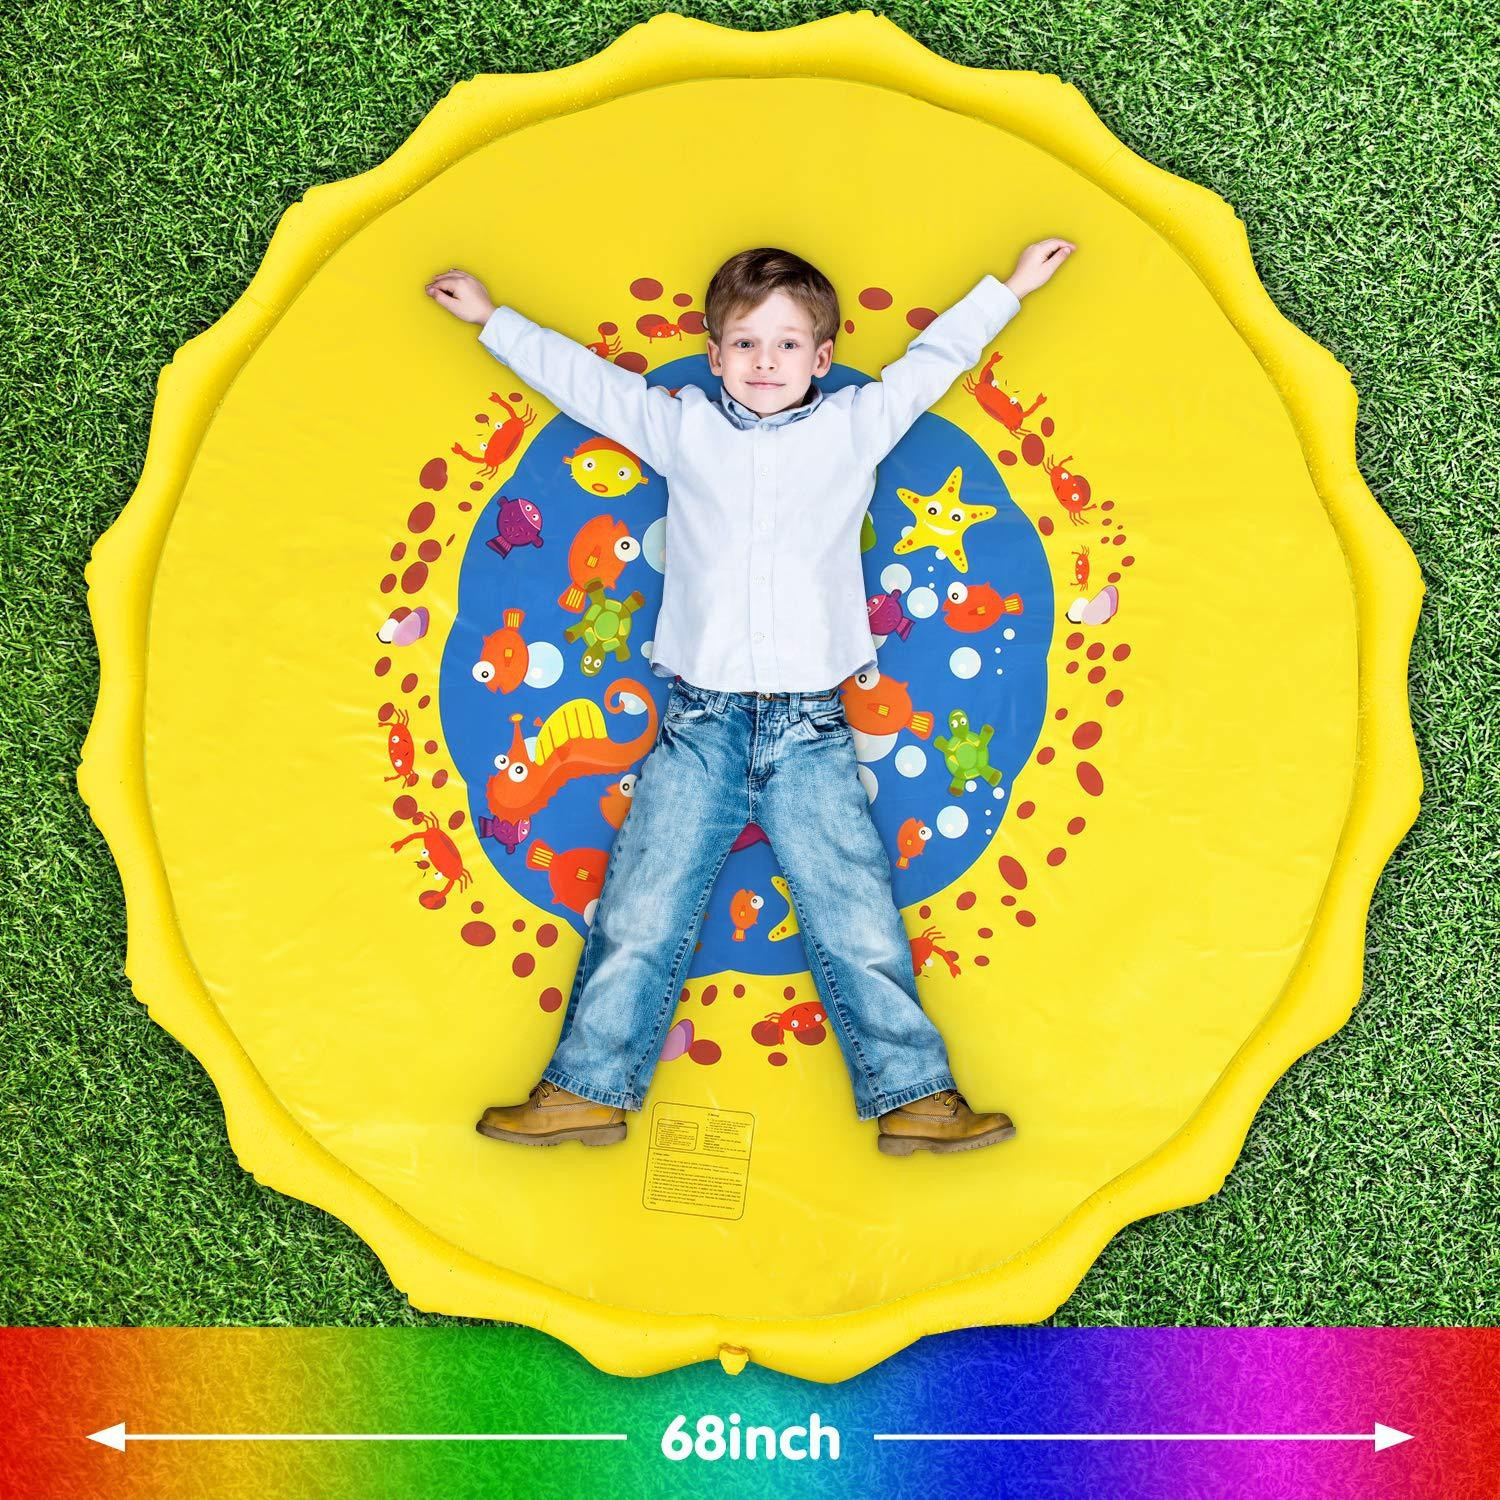 2020 outdoor garden children sprinkle splash sprinkle pad inflatable spray water play sprinkler play mat toy